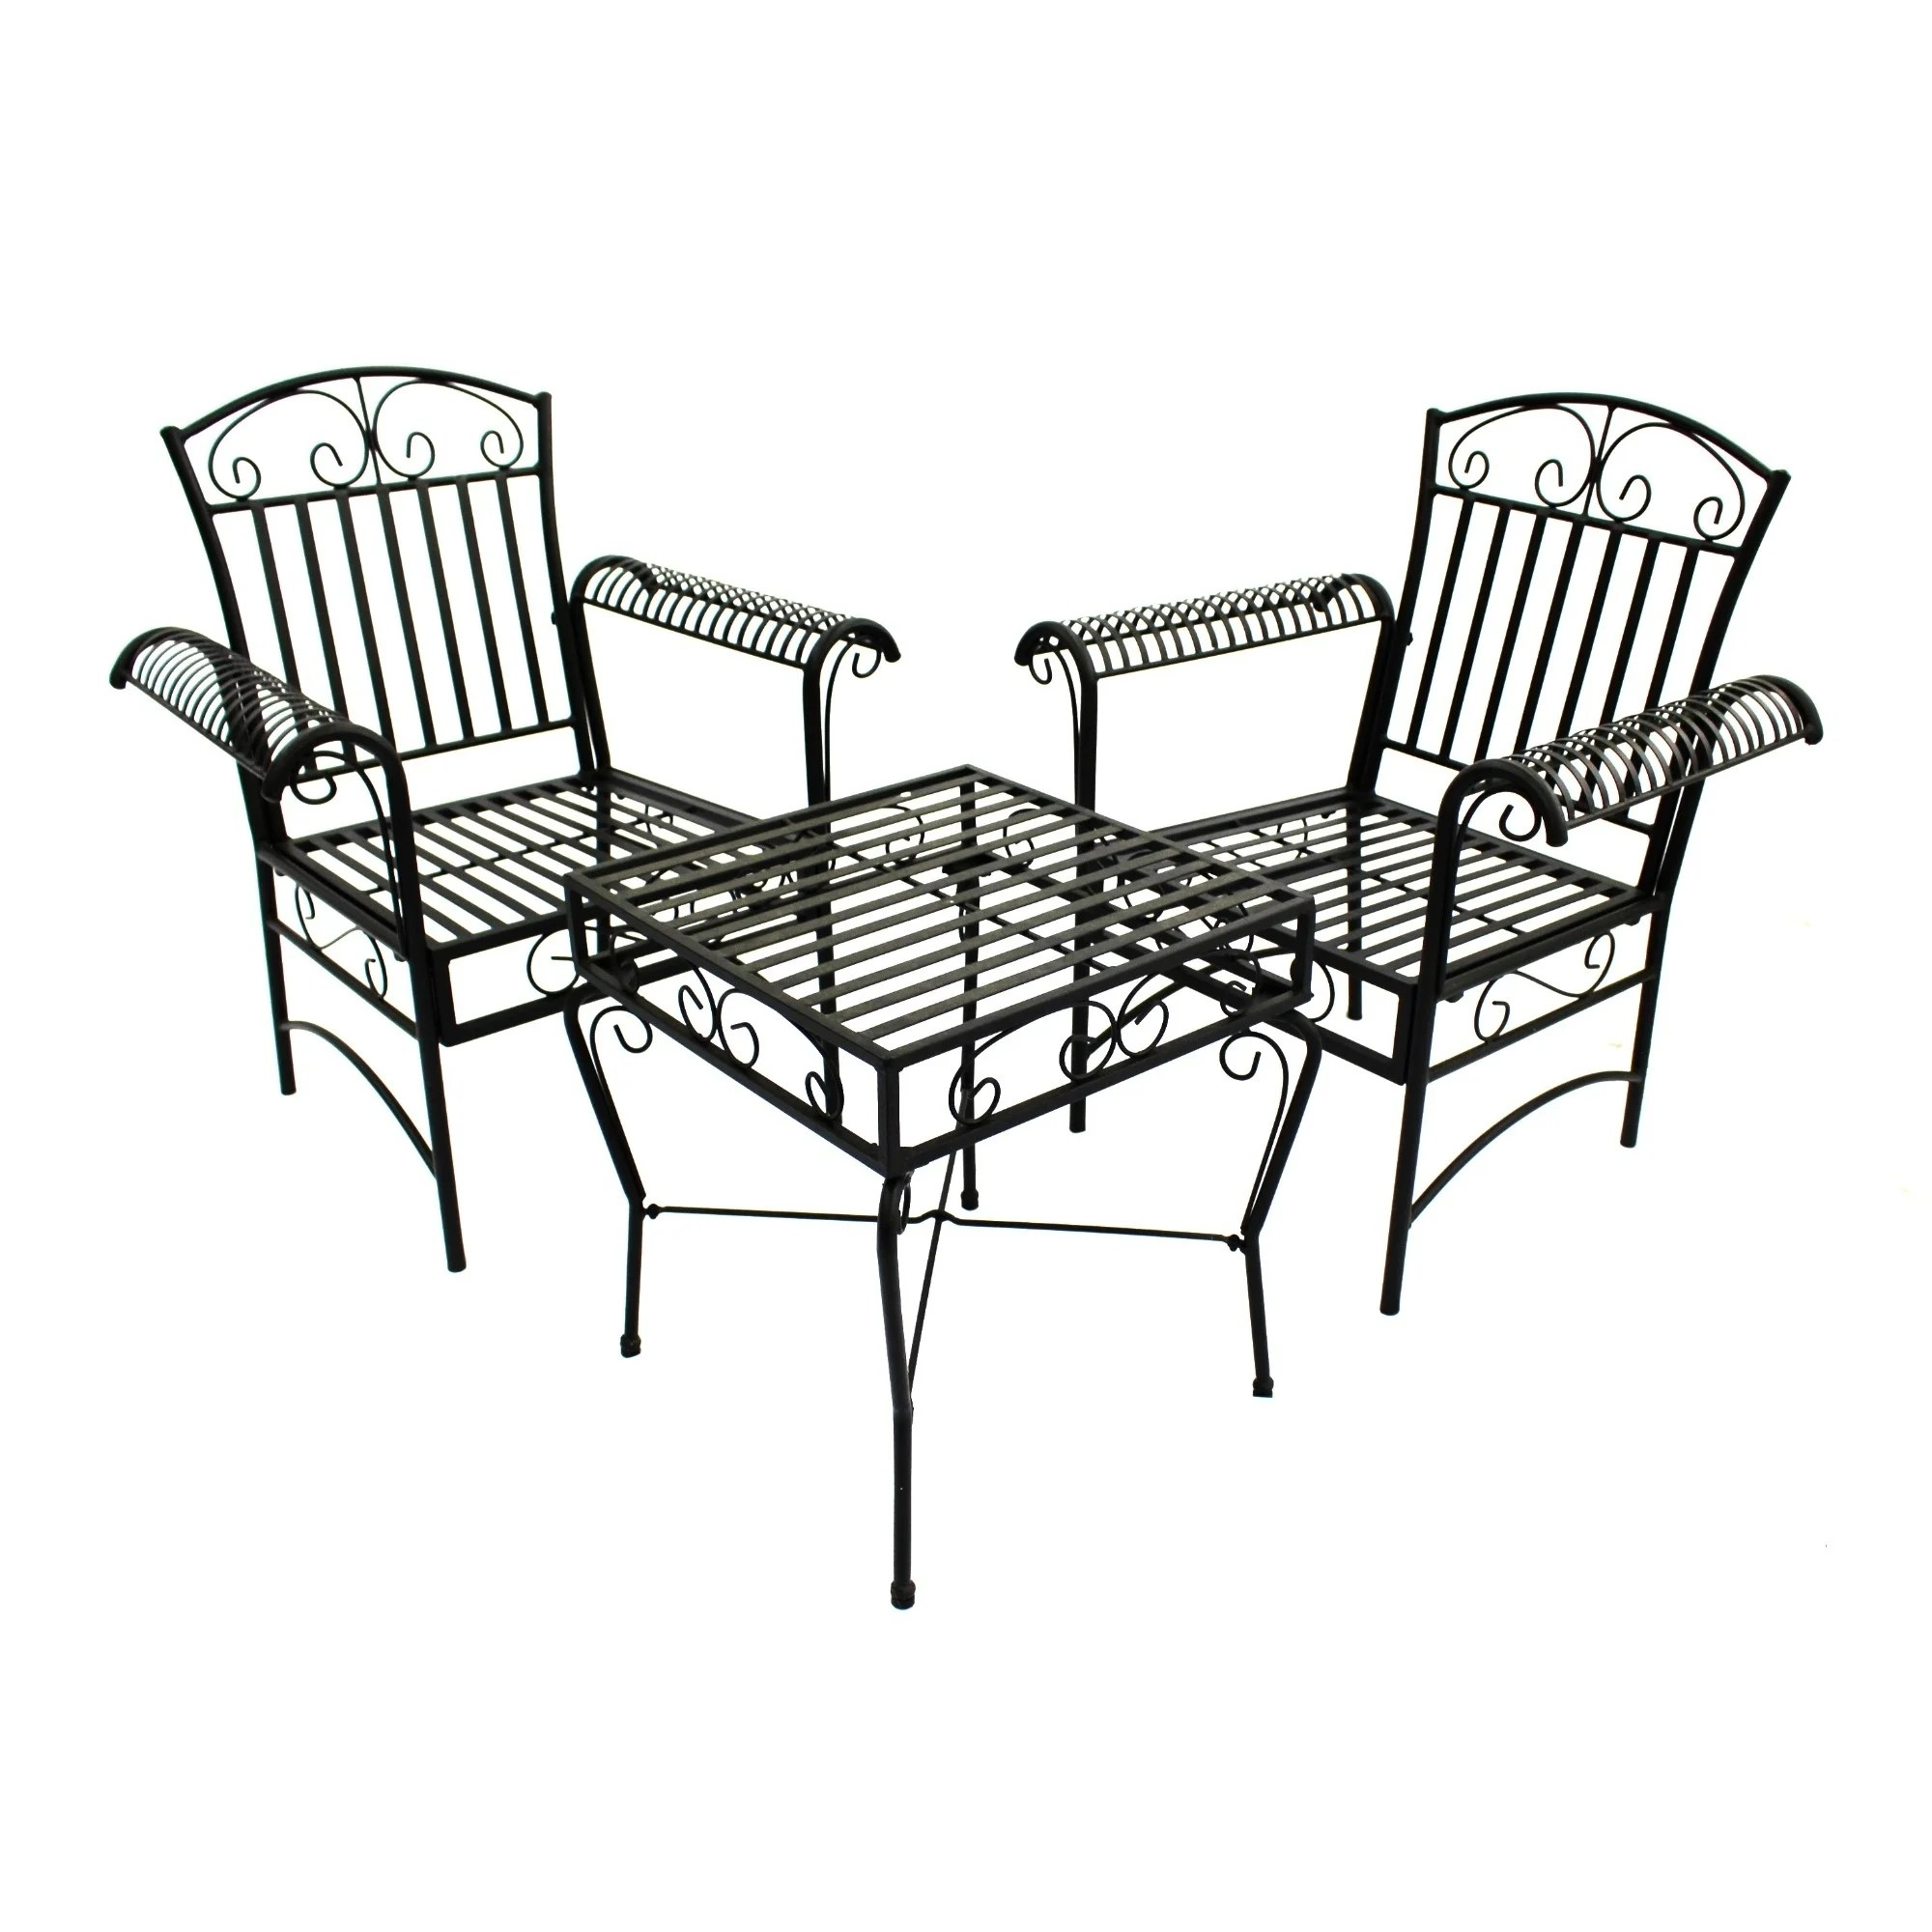 Shop Courtyard Casual Black Steel French Quarter Outdoor